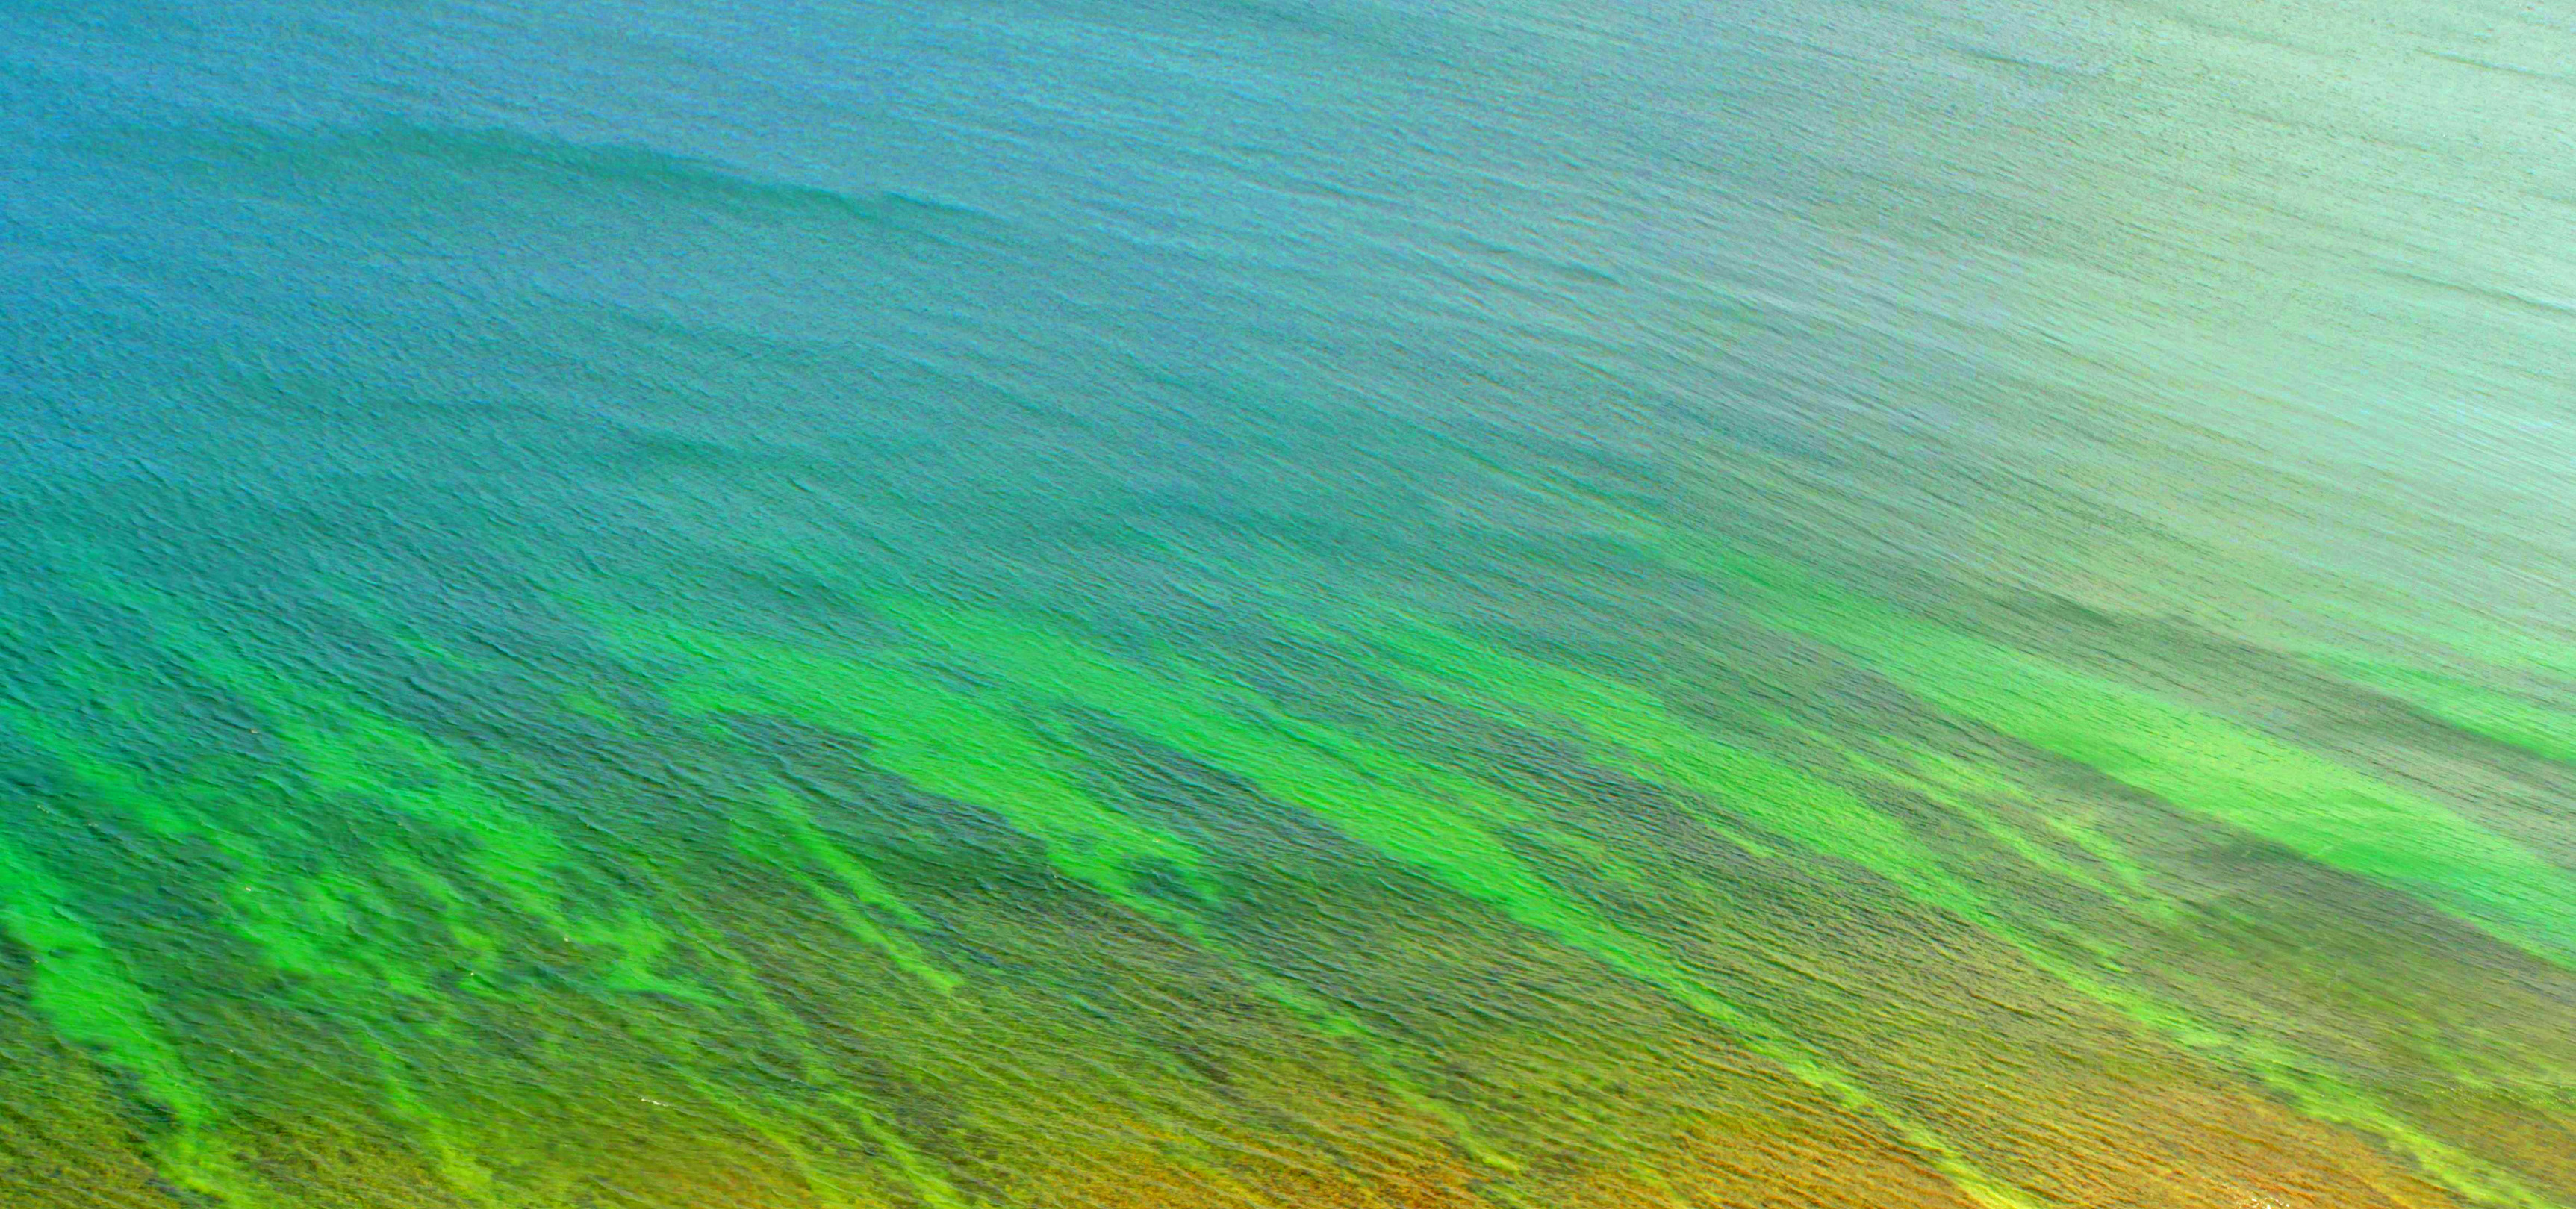 Beautiful natural pattern - ocean ripple photo